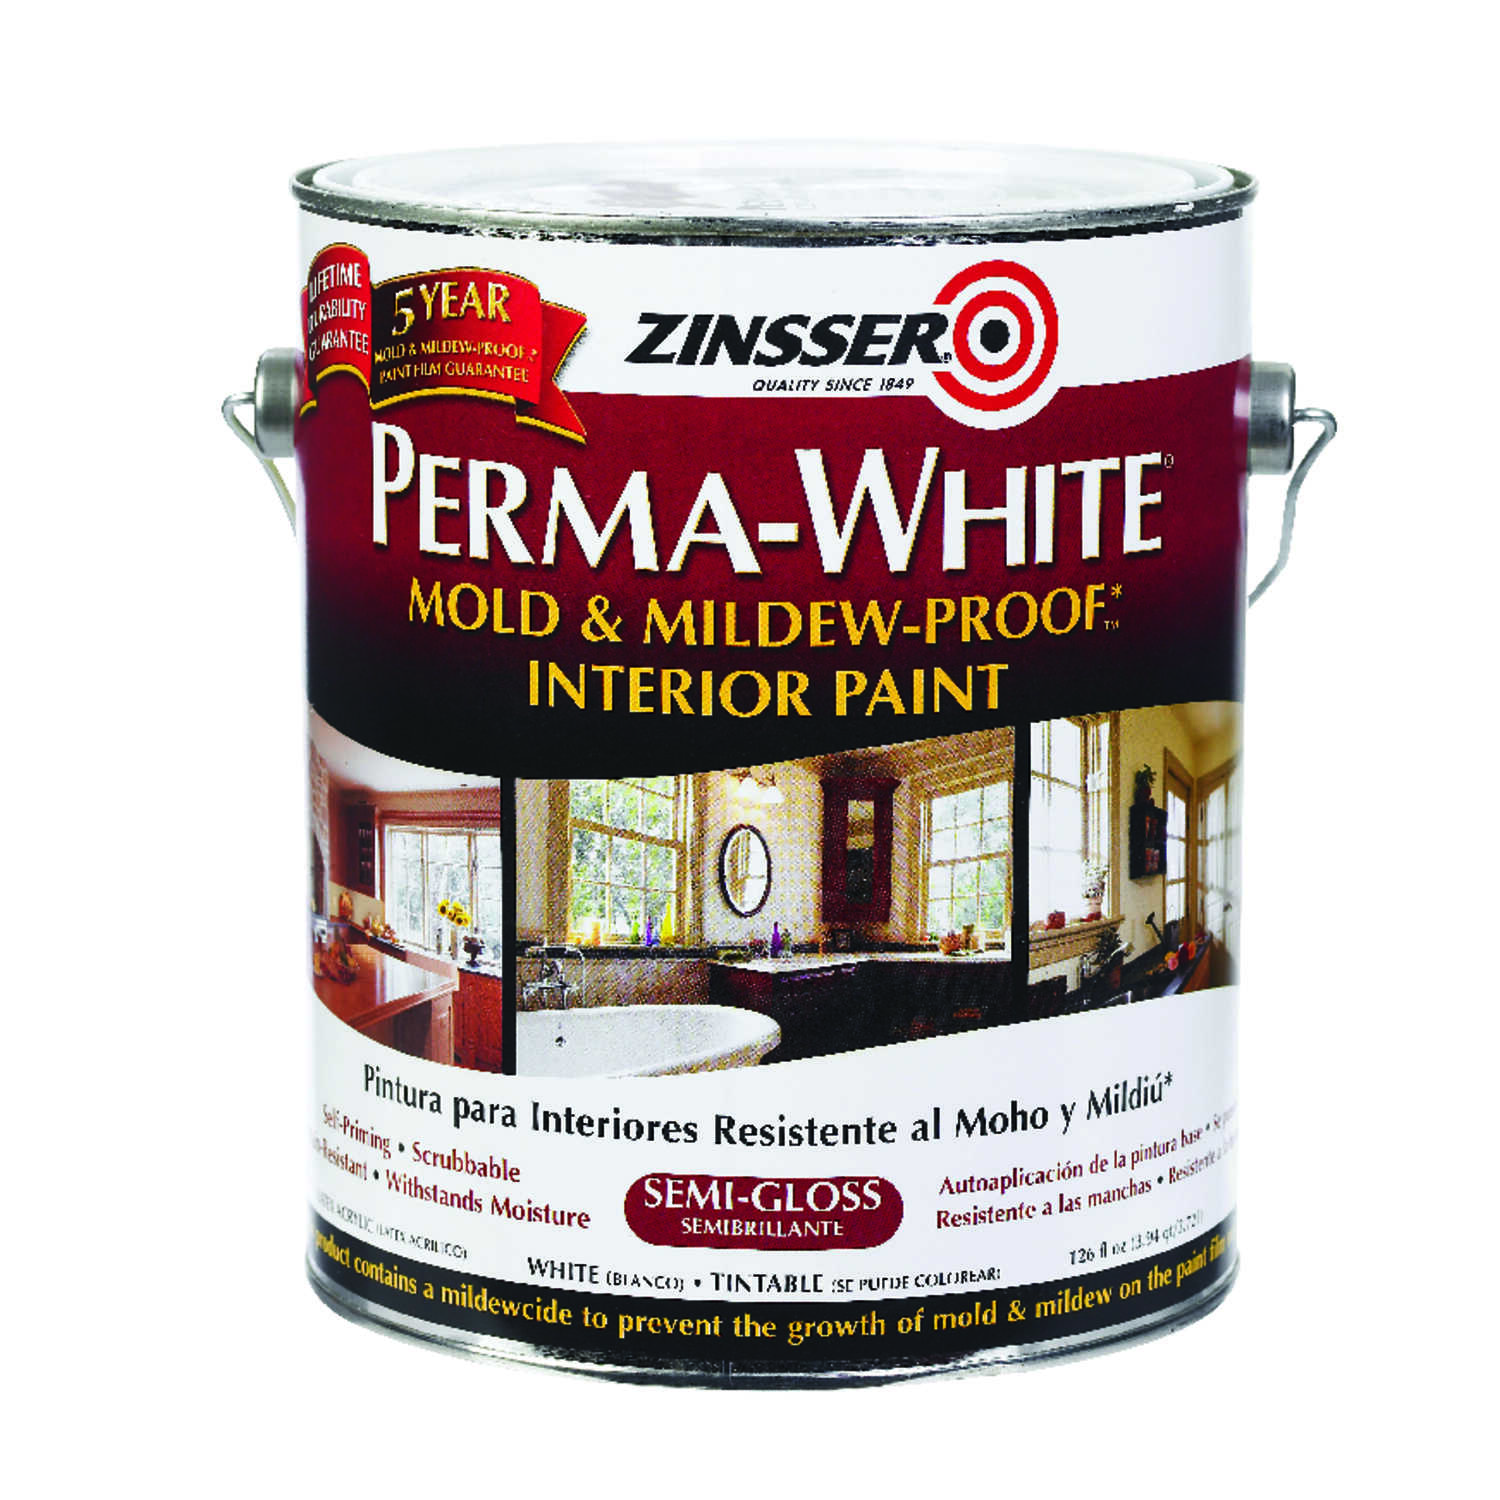 Zinsser  Perma-White  Semi-Gloss  White  Mold and Mildew-Proof Paint  1 gal.